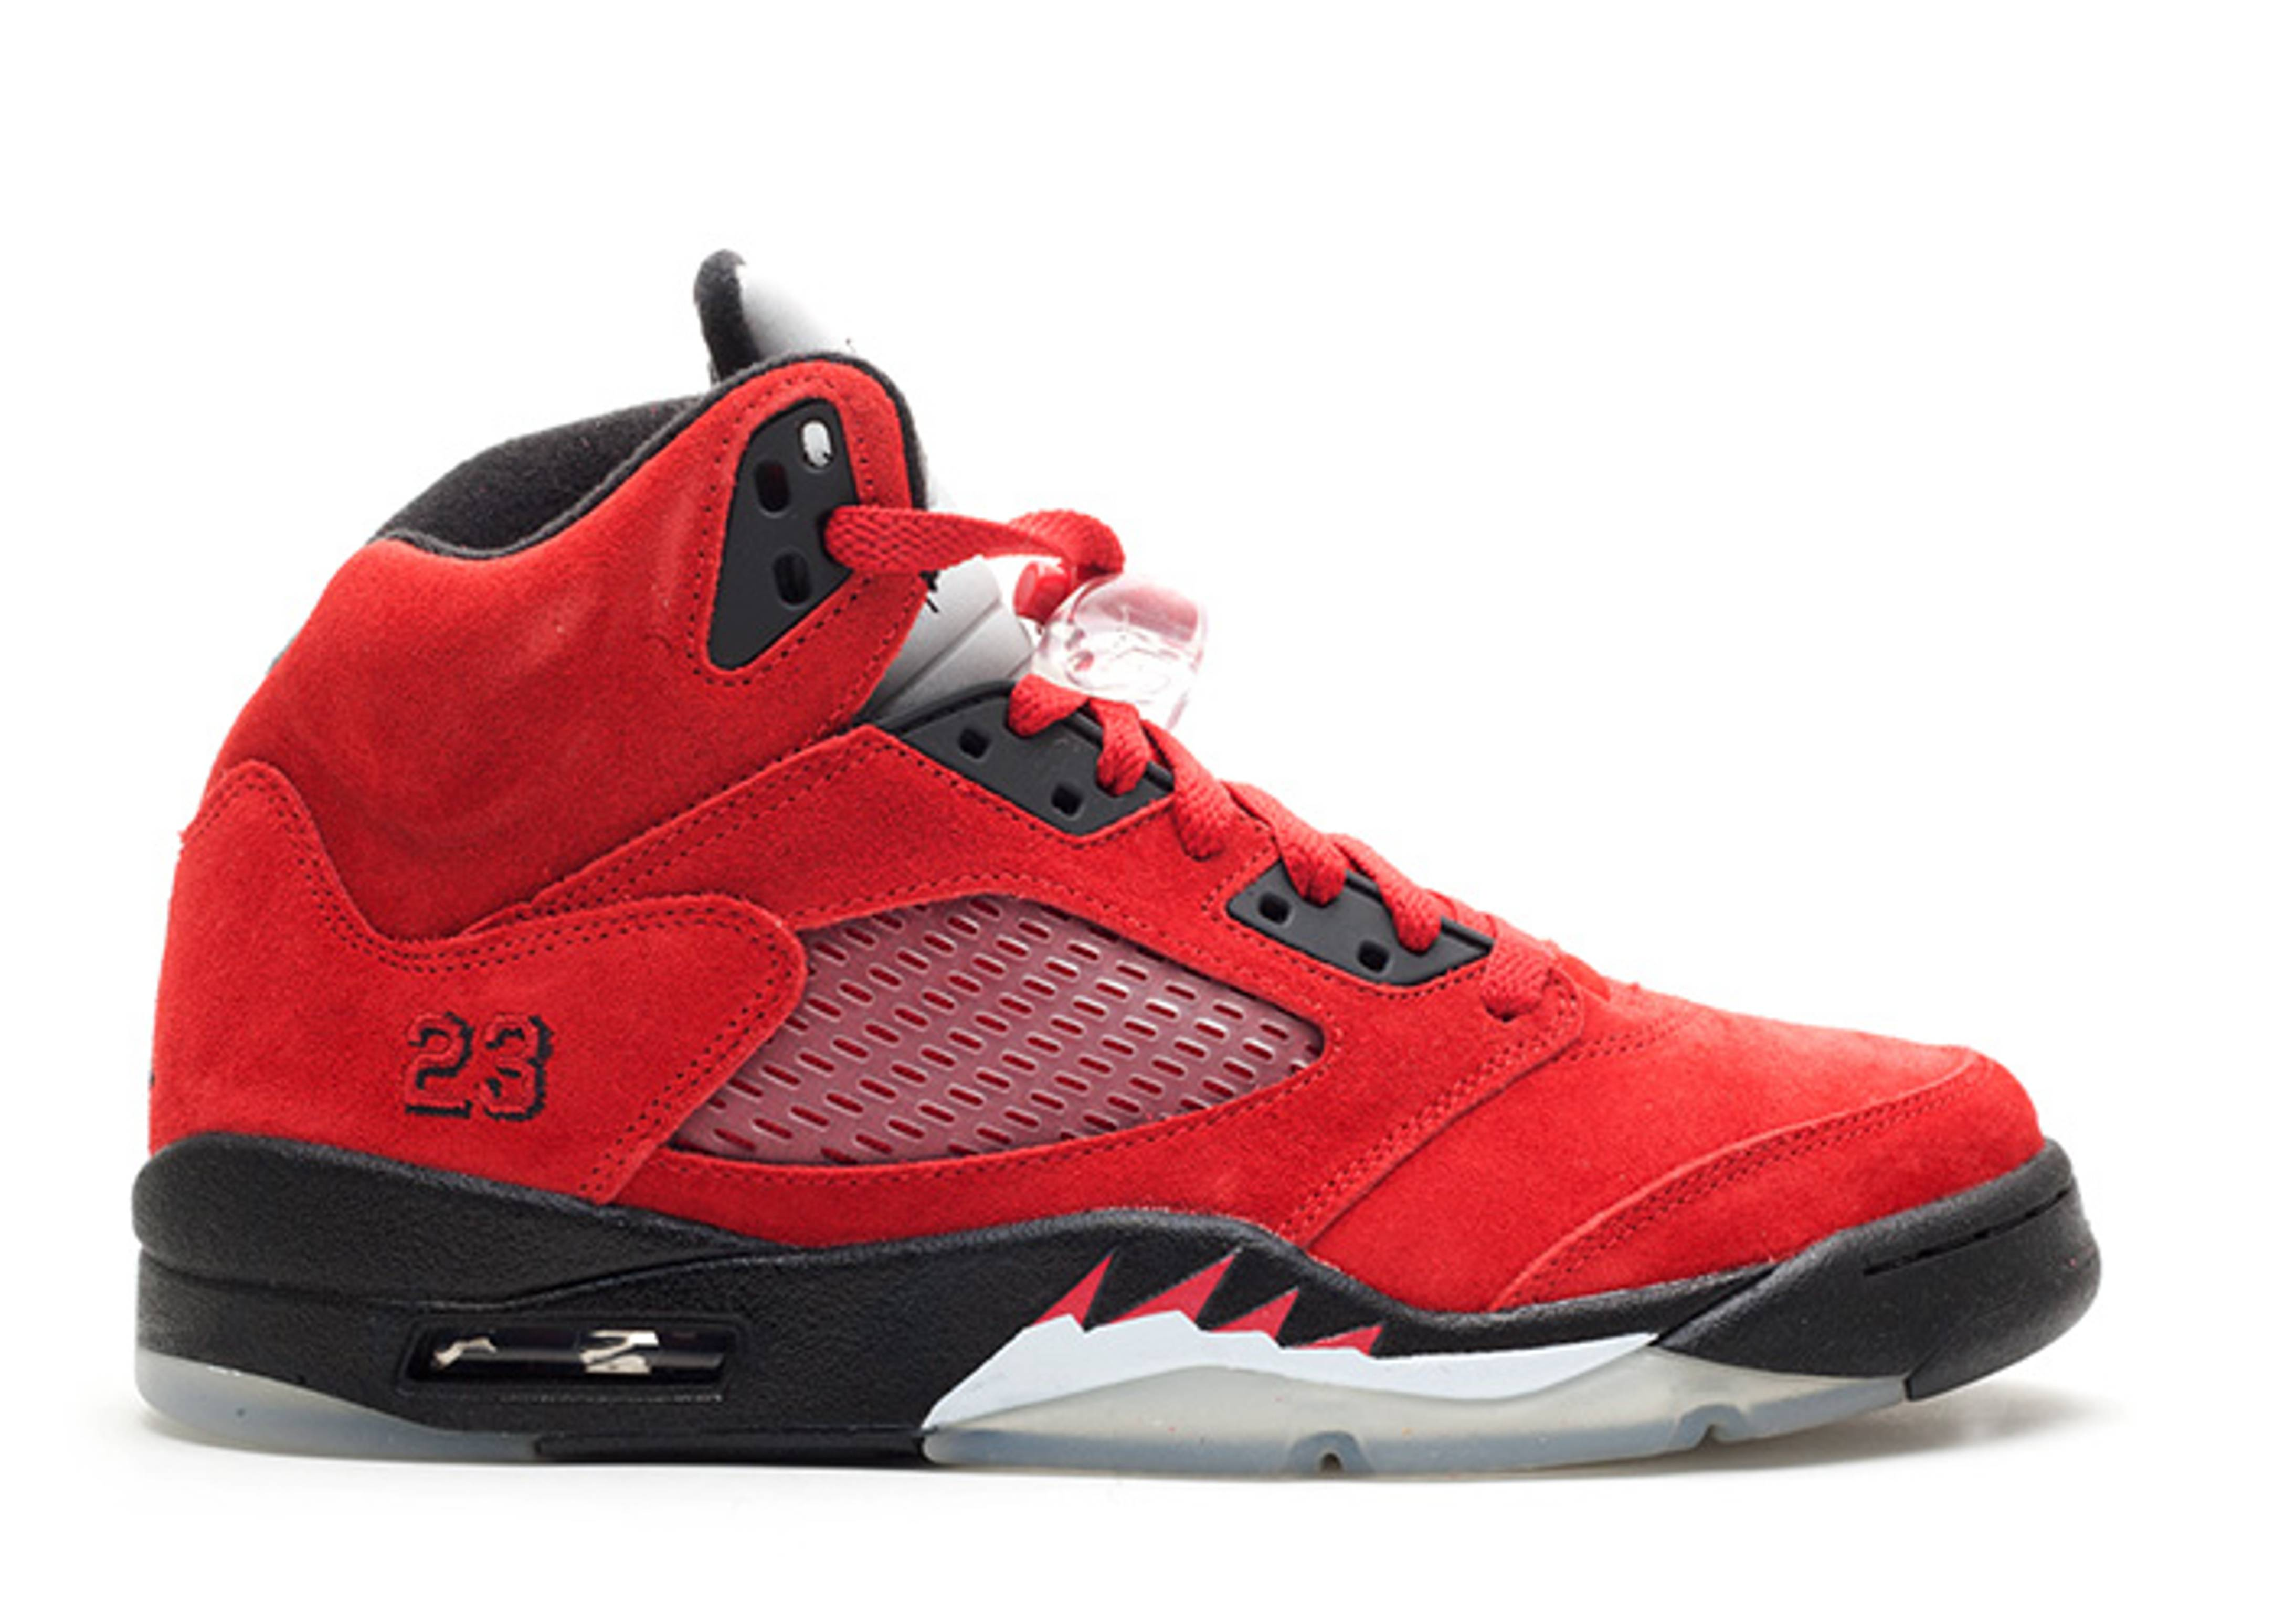 nike air jordan 5 raging bull